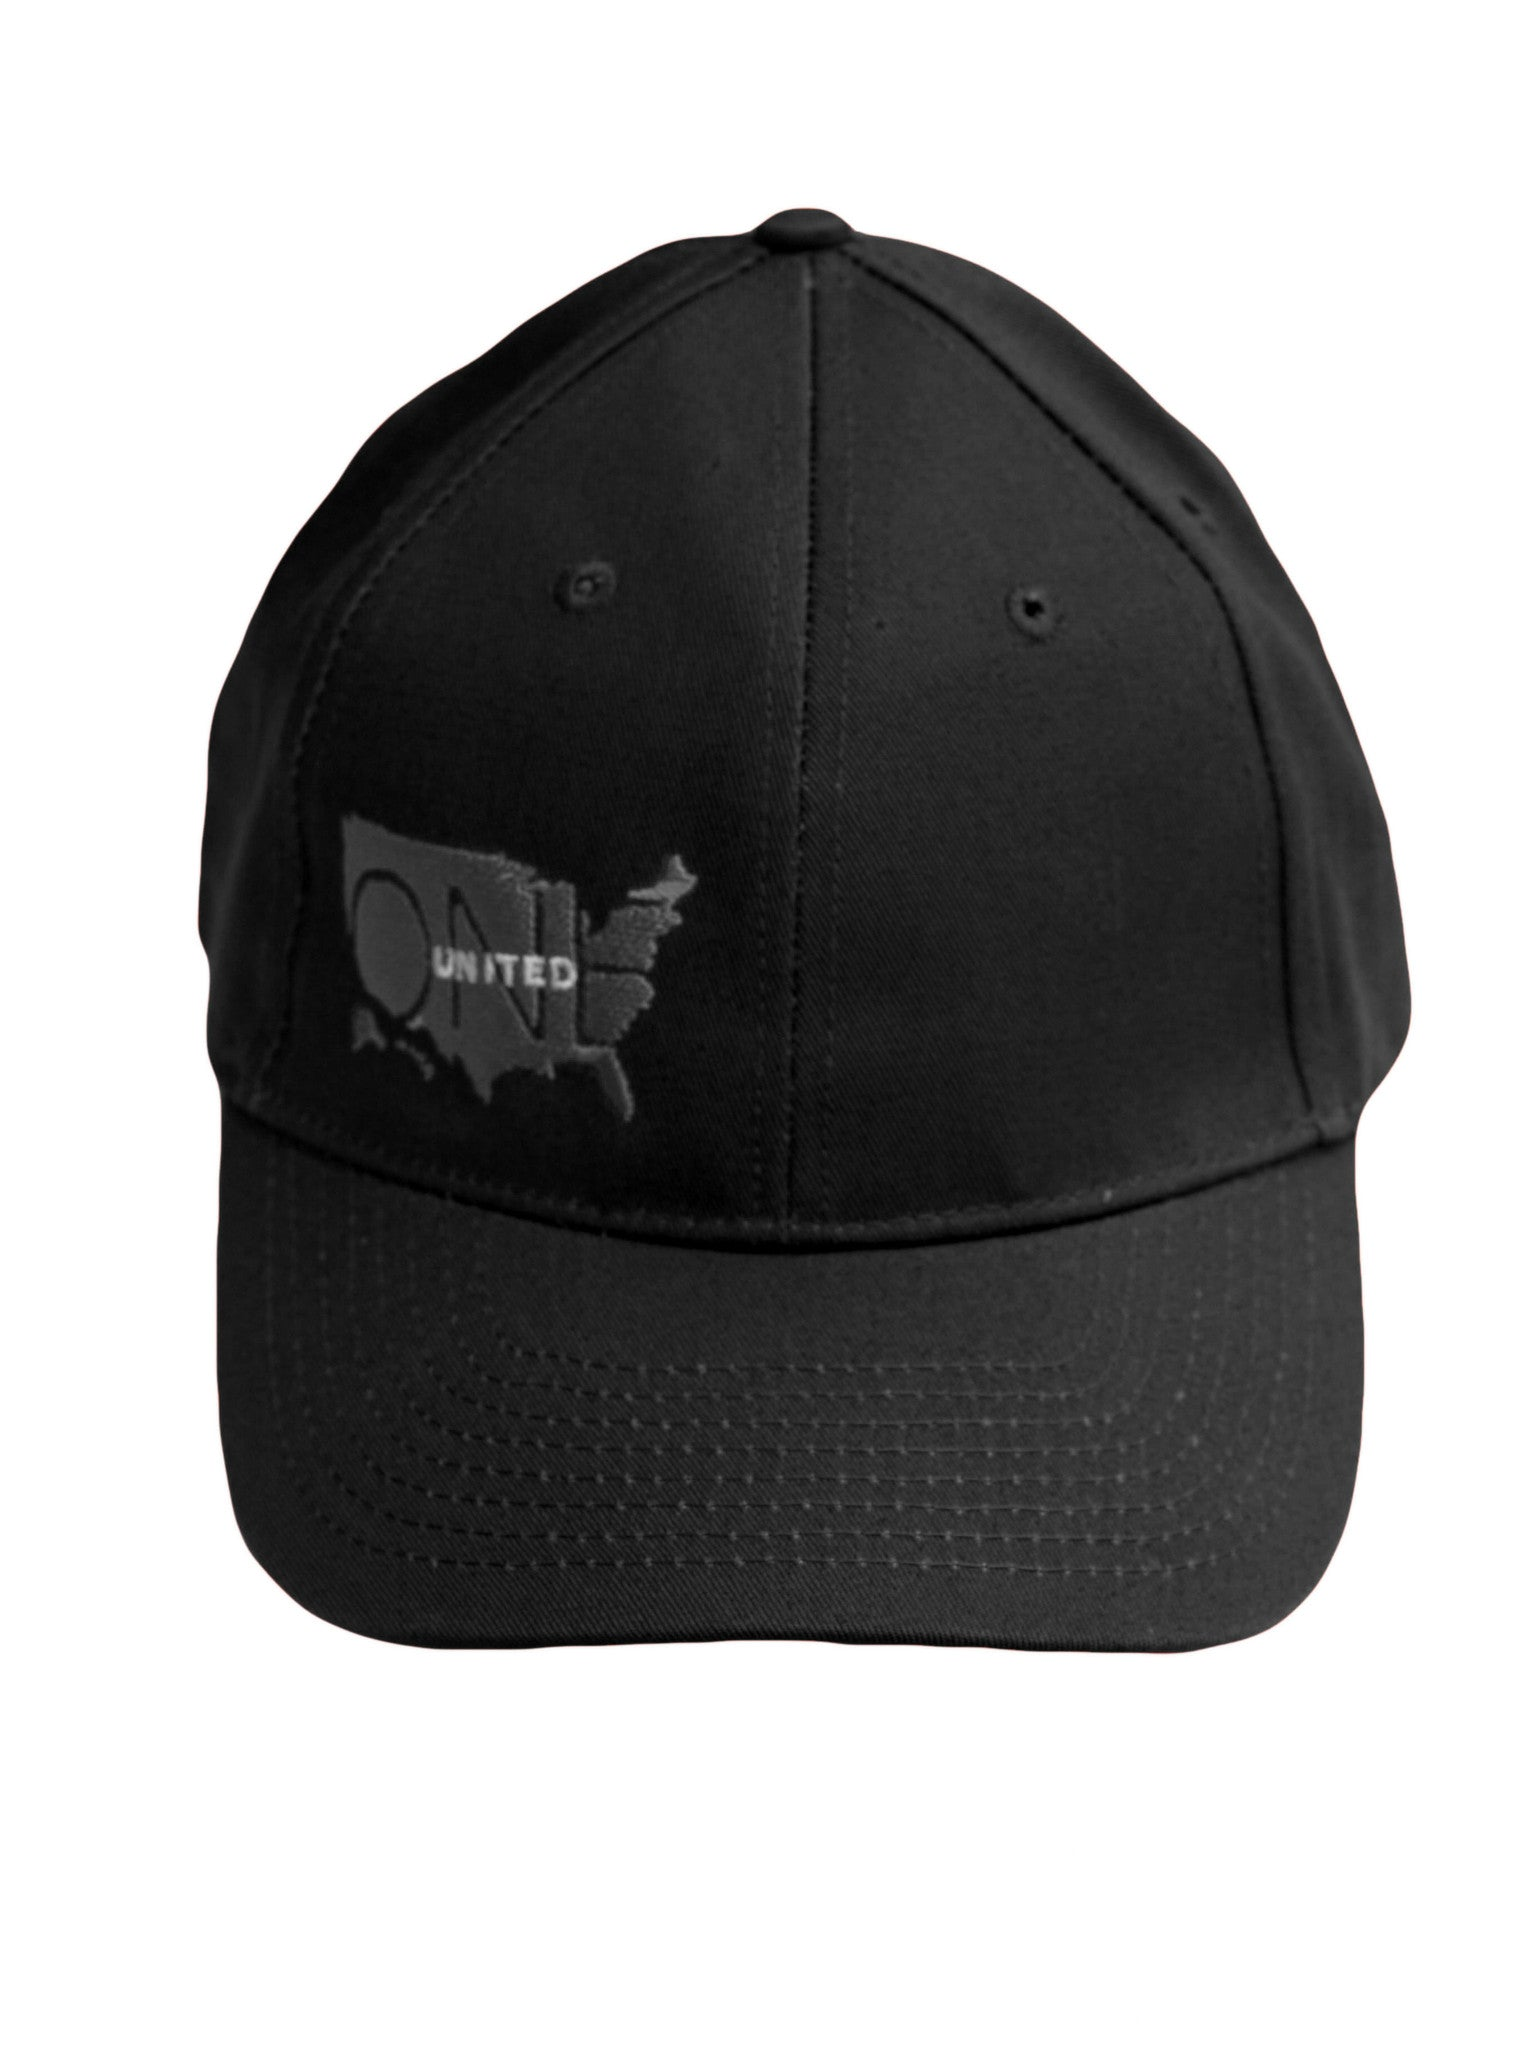 MEN'S LIFESTYLE HATS - MULTIPLE COLORS AVAILABLE